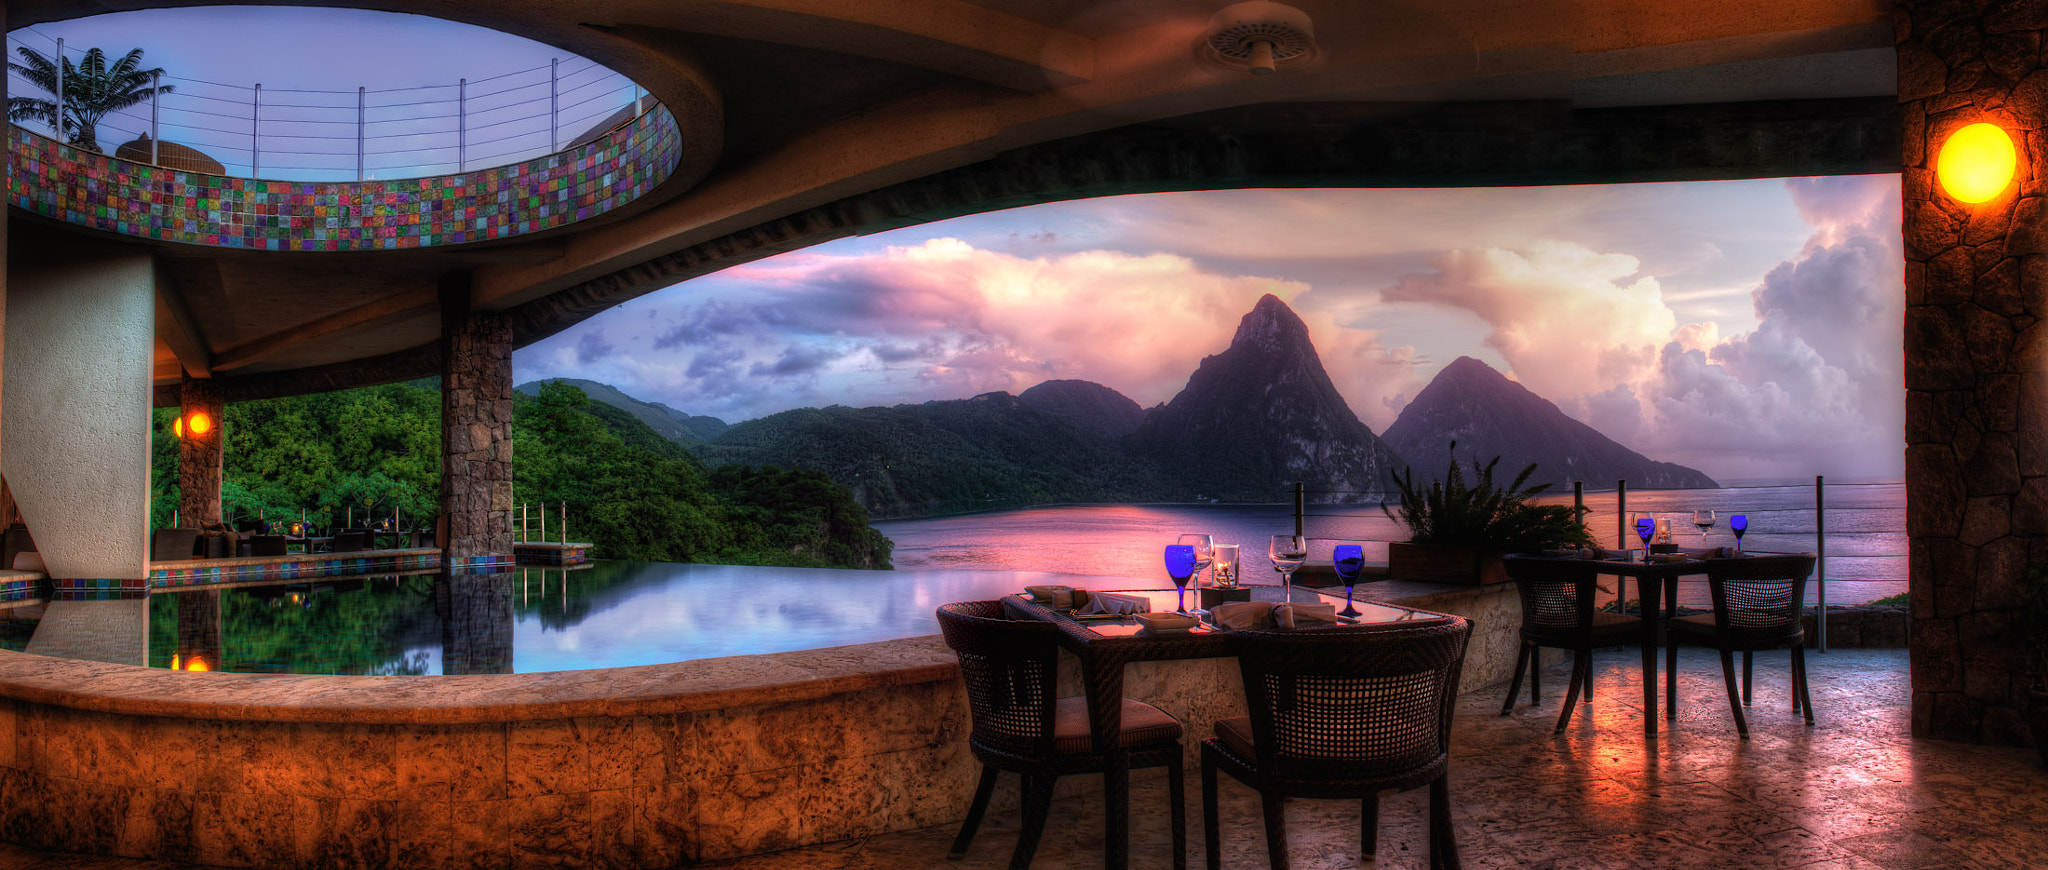 Photograph Sunset at Jade Mountain St. Lucia by RC Concepcion on 500px